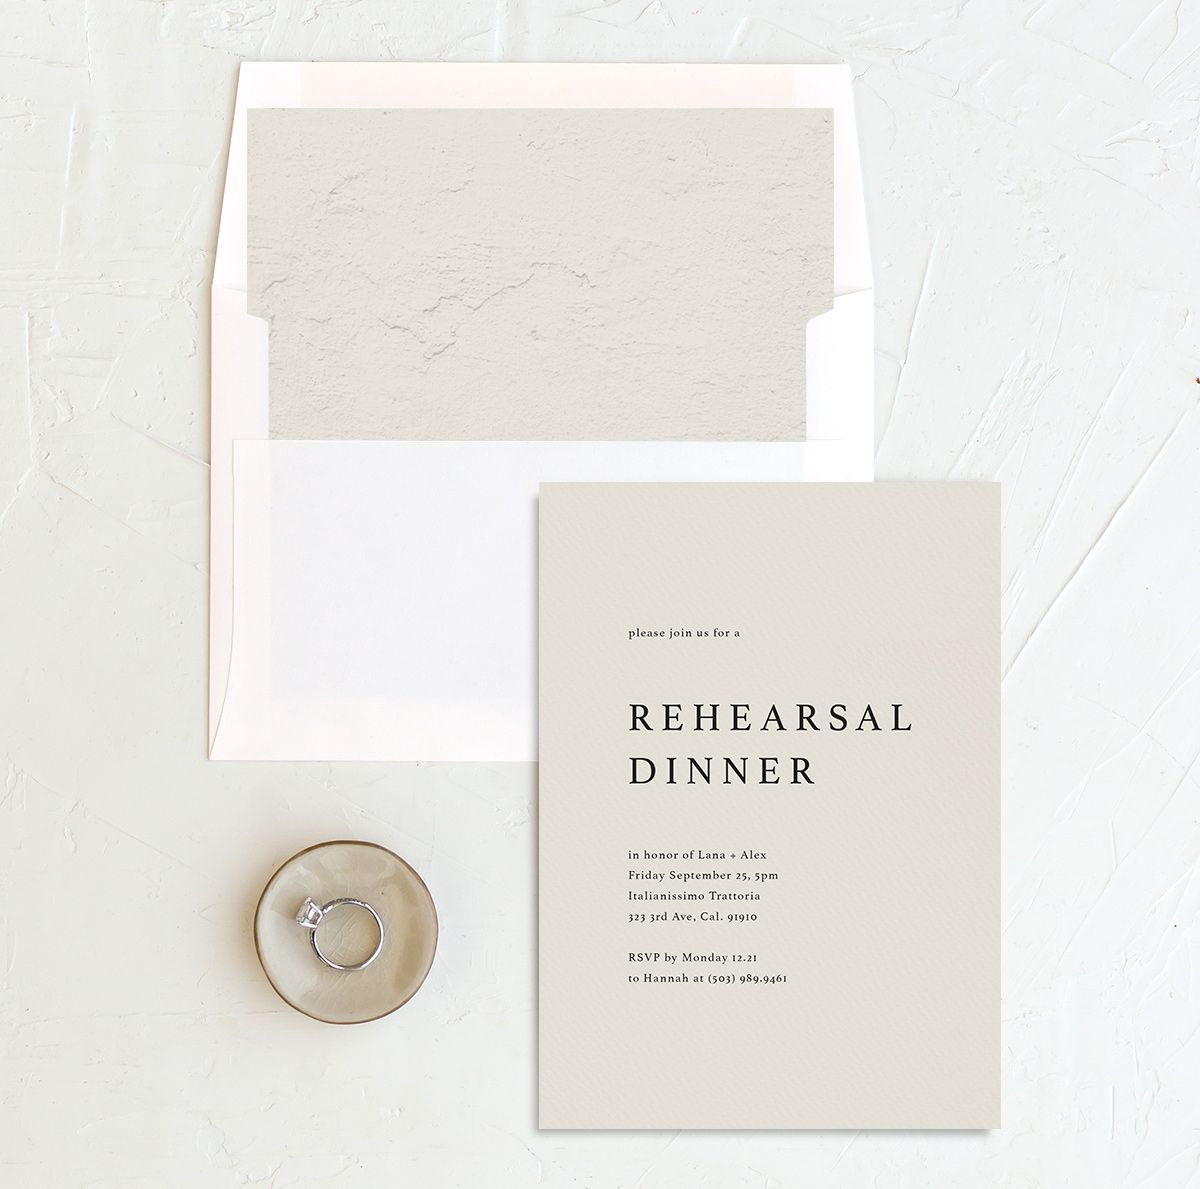 Natural Palette rehearsal dinner invitation with liner in blue